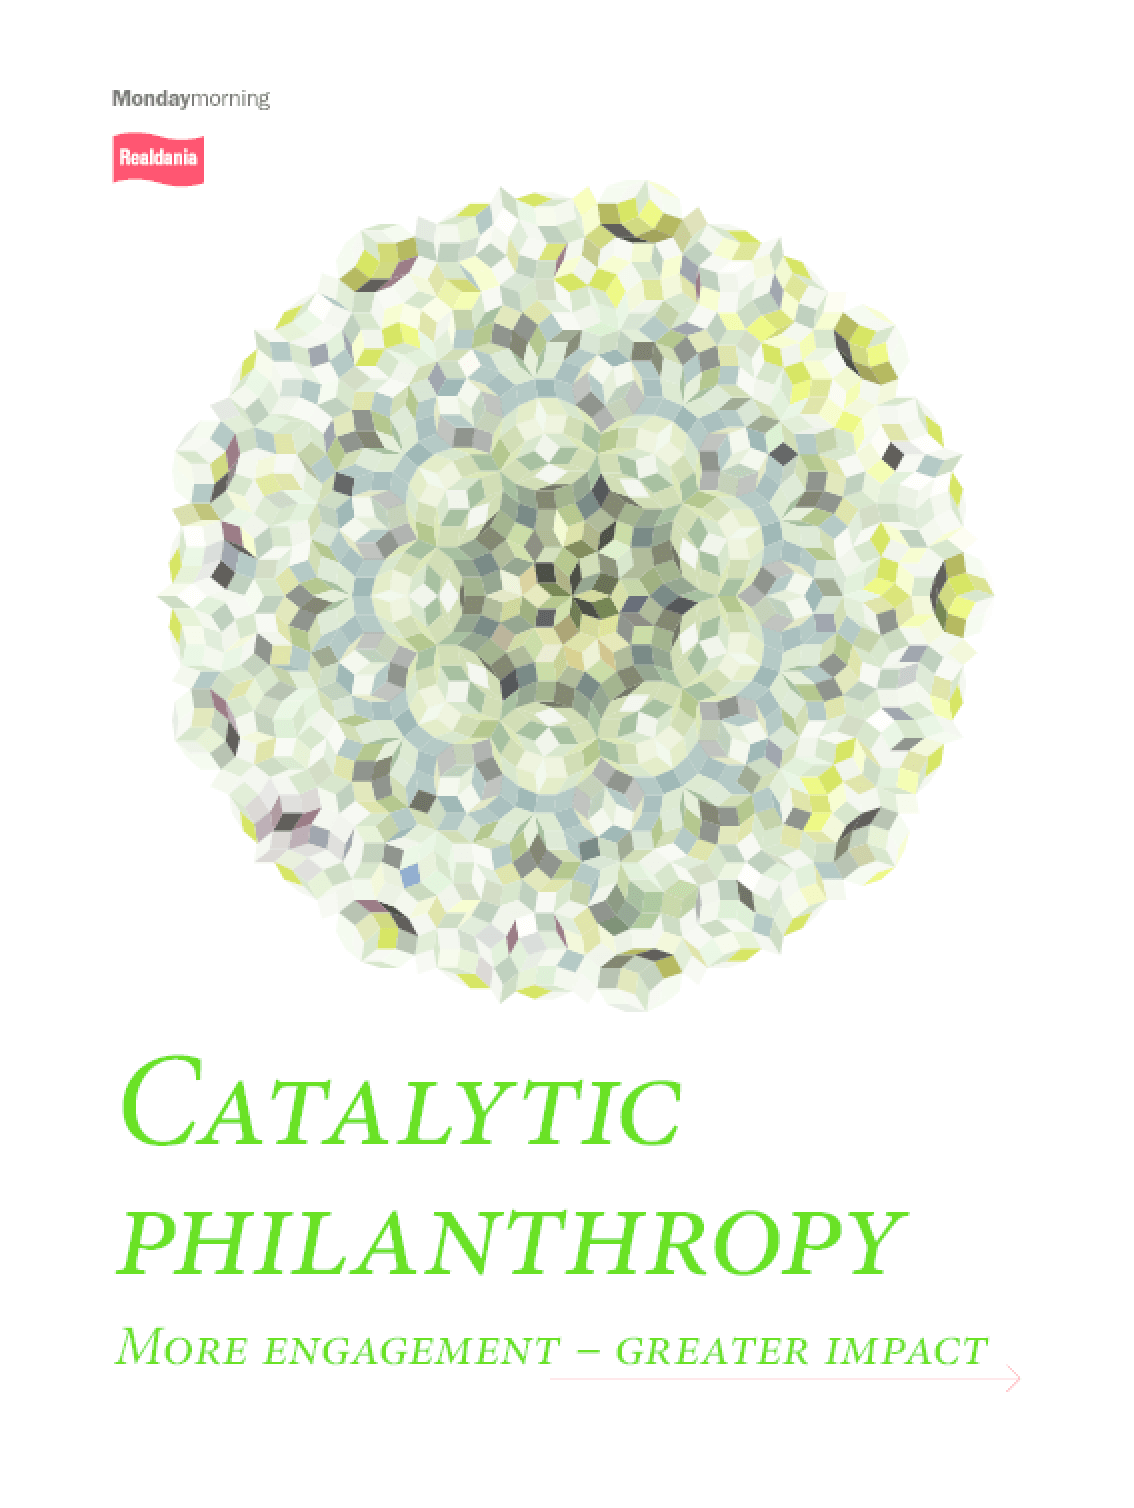 Catalytic Philanthropy: More Engagement - Greater Impact